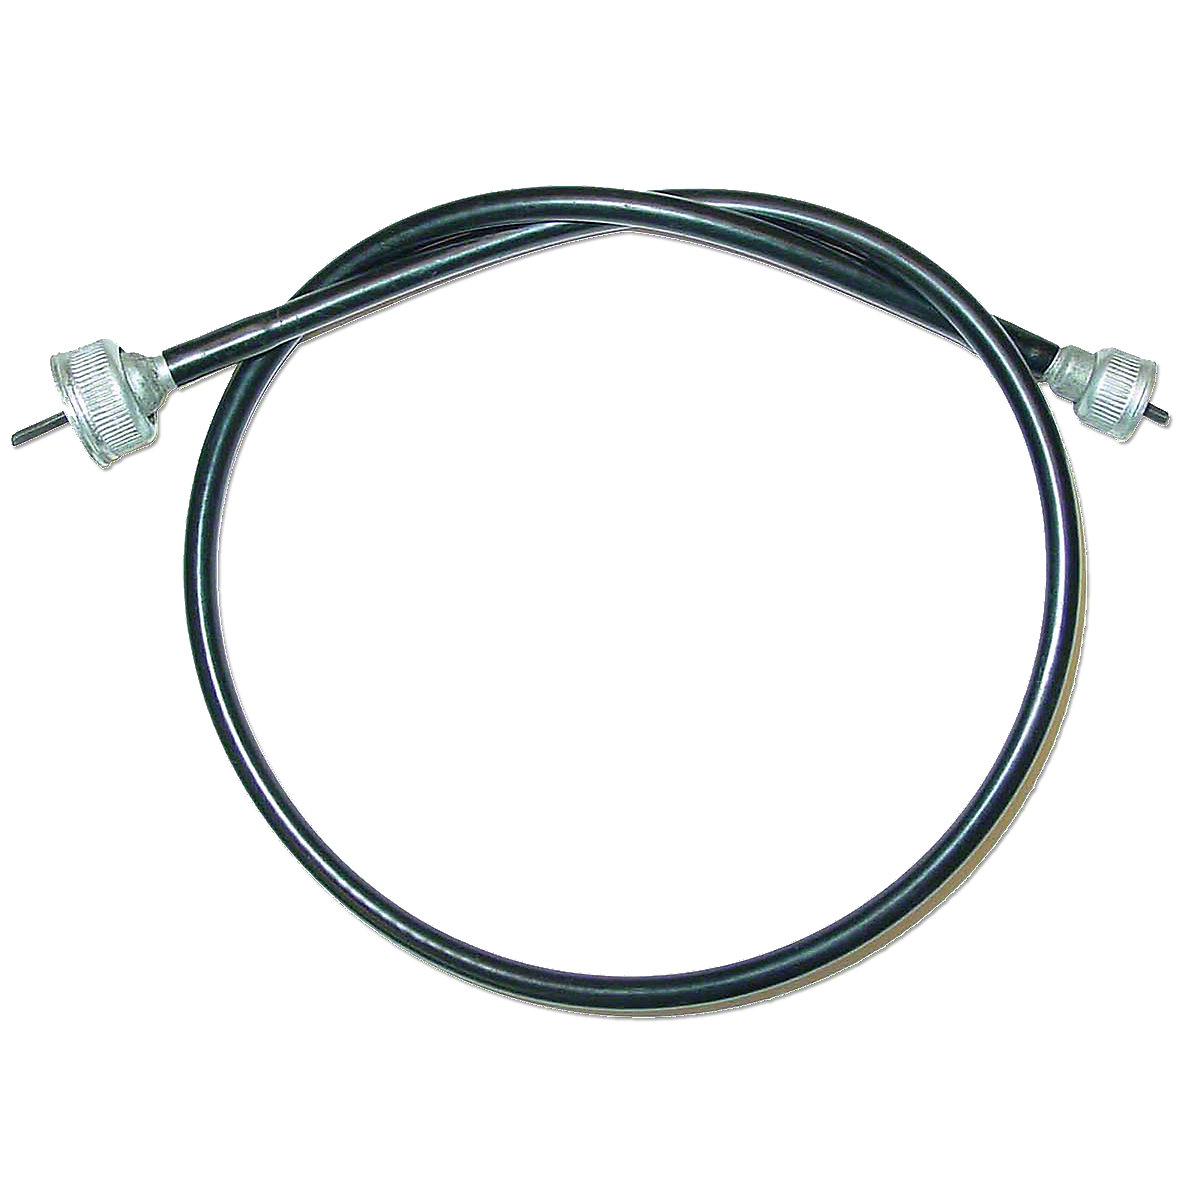 Tachometer Cable For Massey Ferguson: TO20, TO30, TO35, 65.